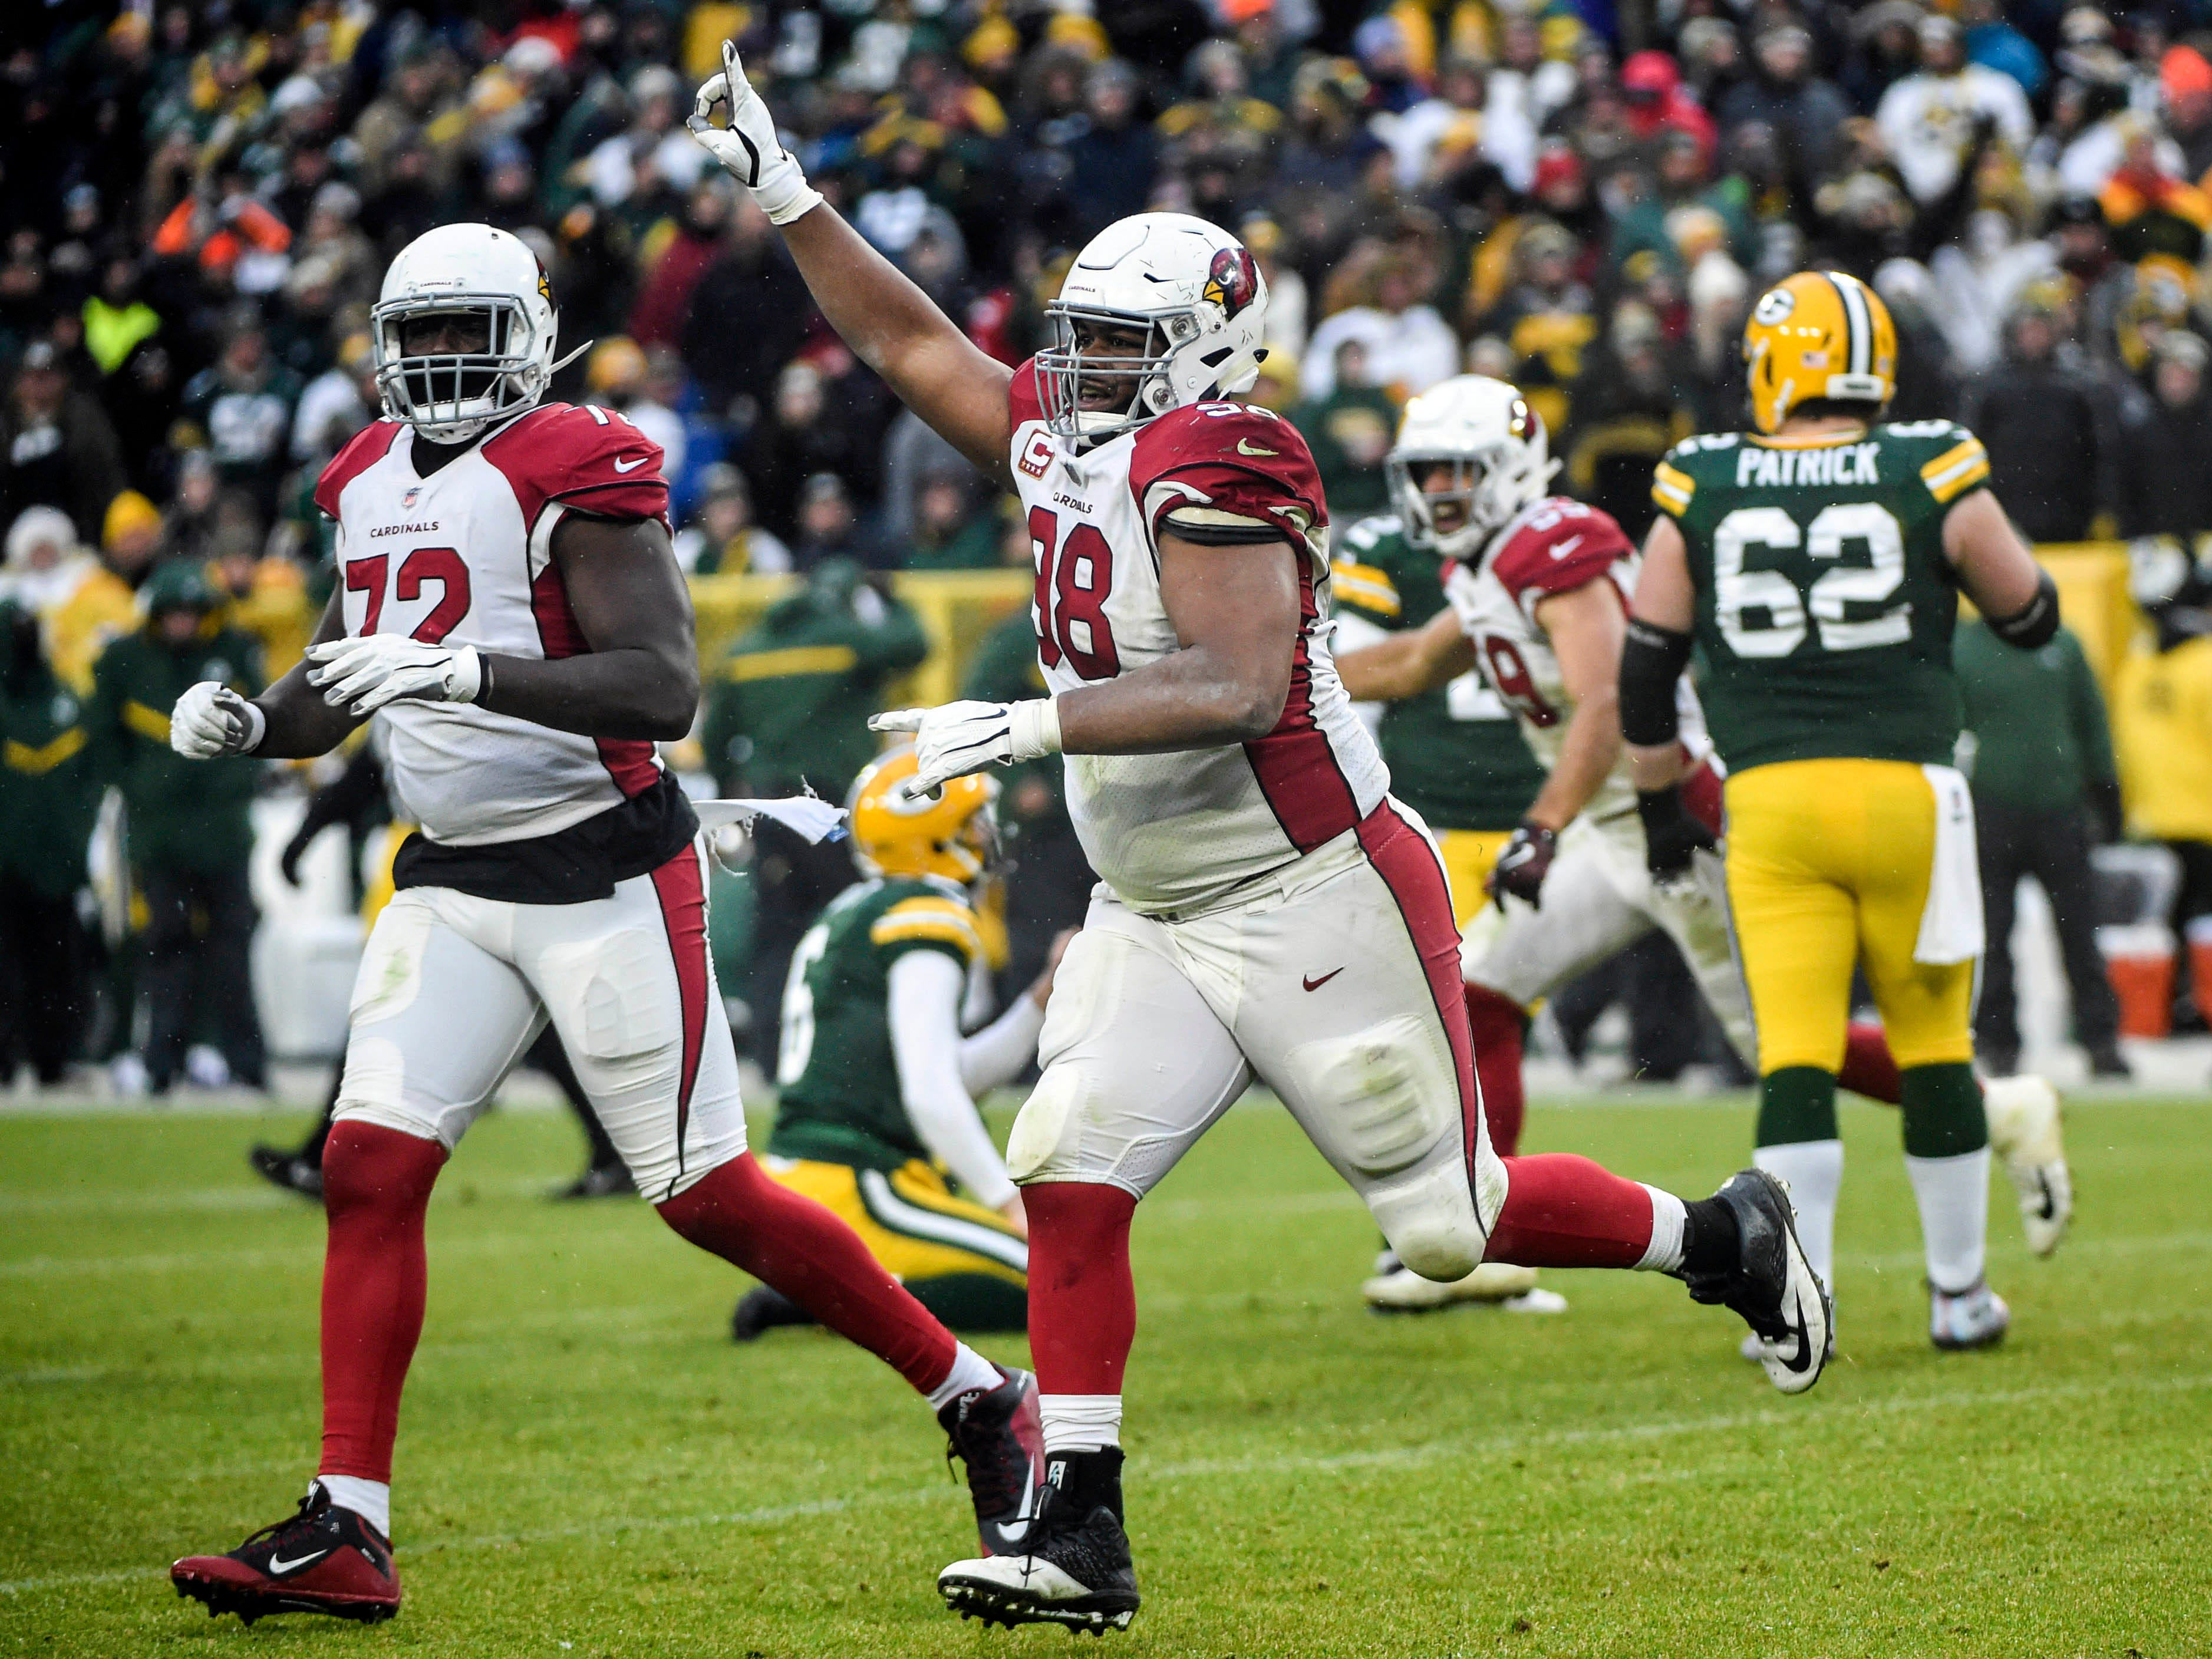 31. Cardinals (32): Say what you want about Packers, but don't call Cards quitters any longer after they won first game in Green Bay in nearly seven decades.